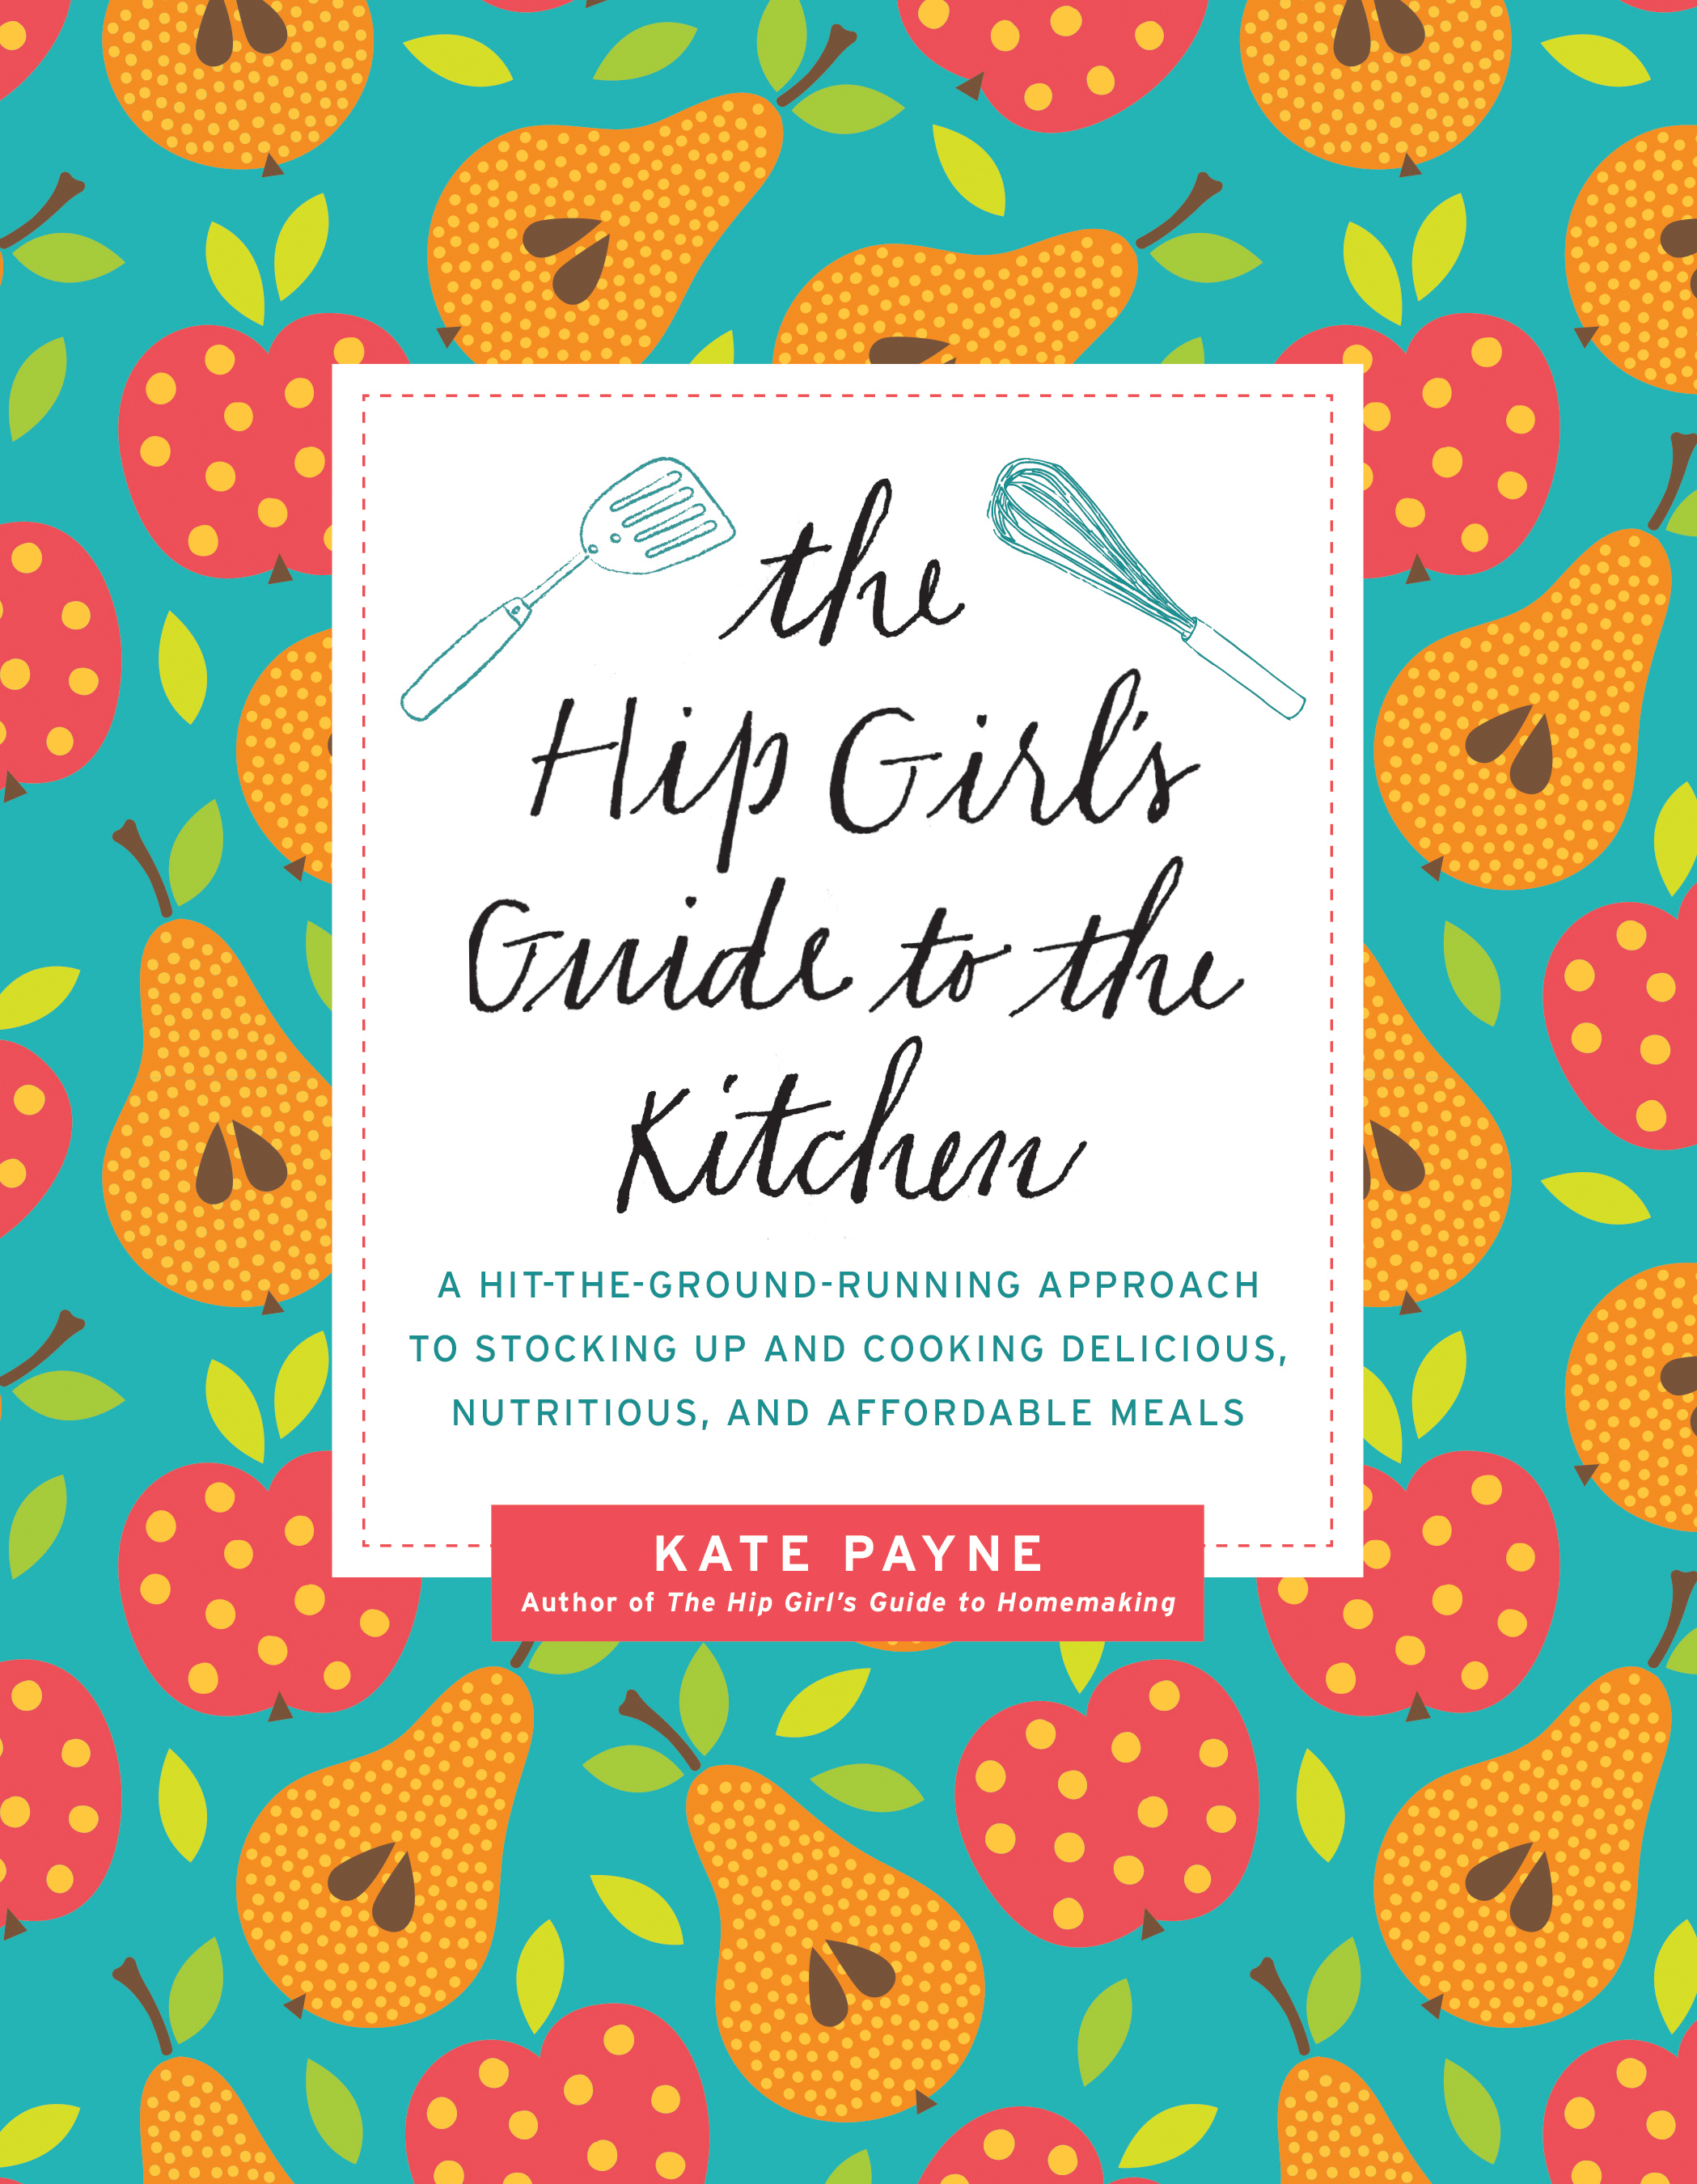 hip girl's guide to the kitchen book release - kate payne